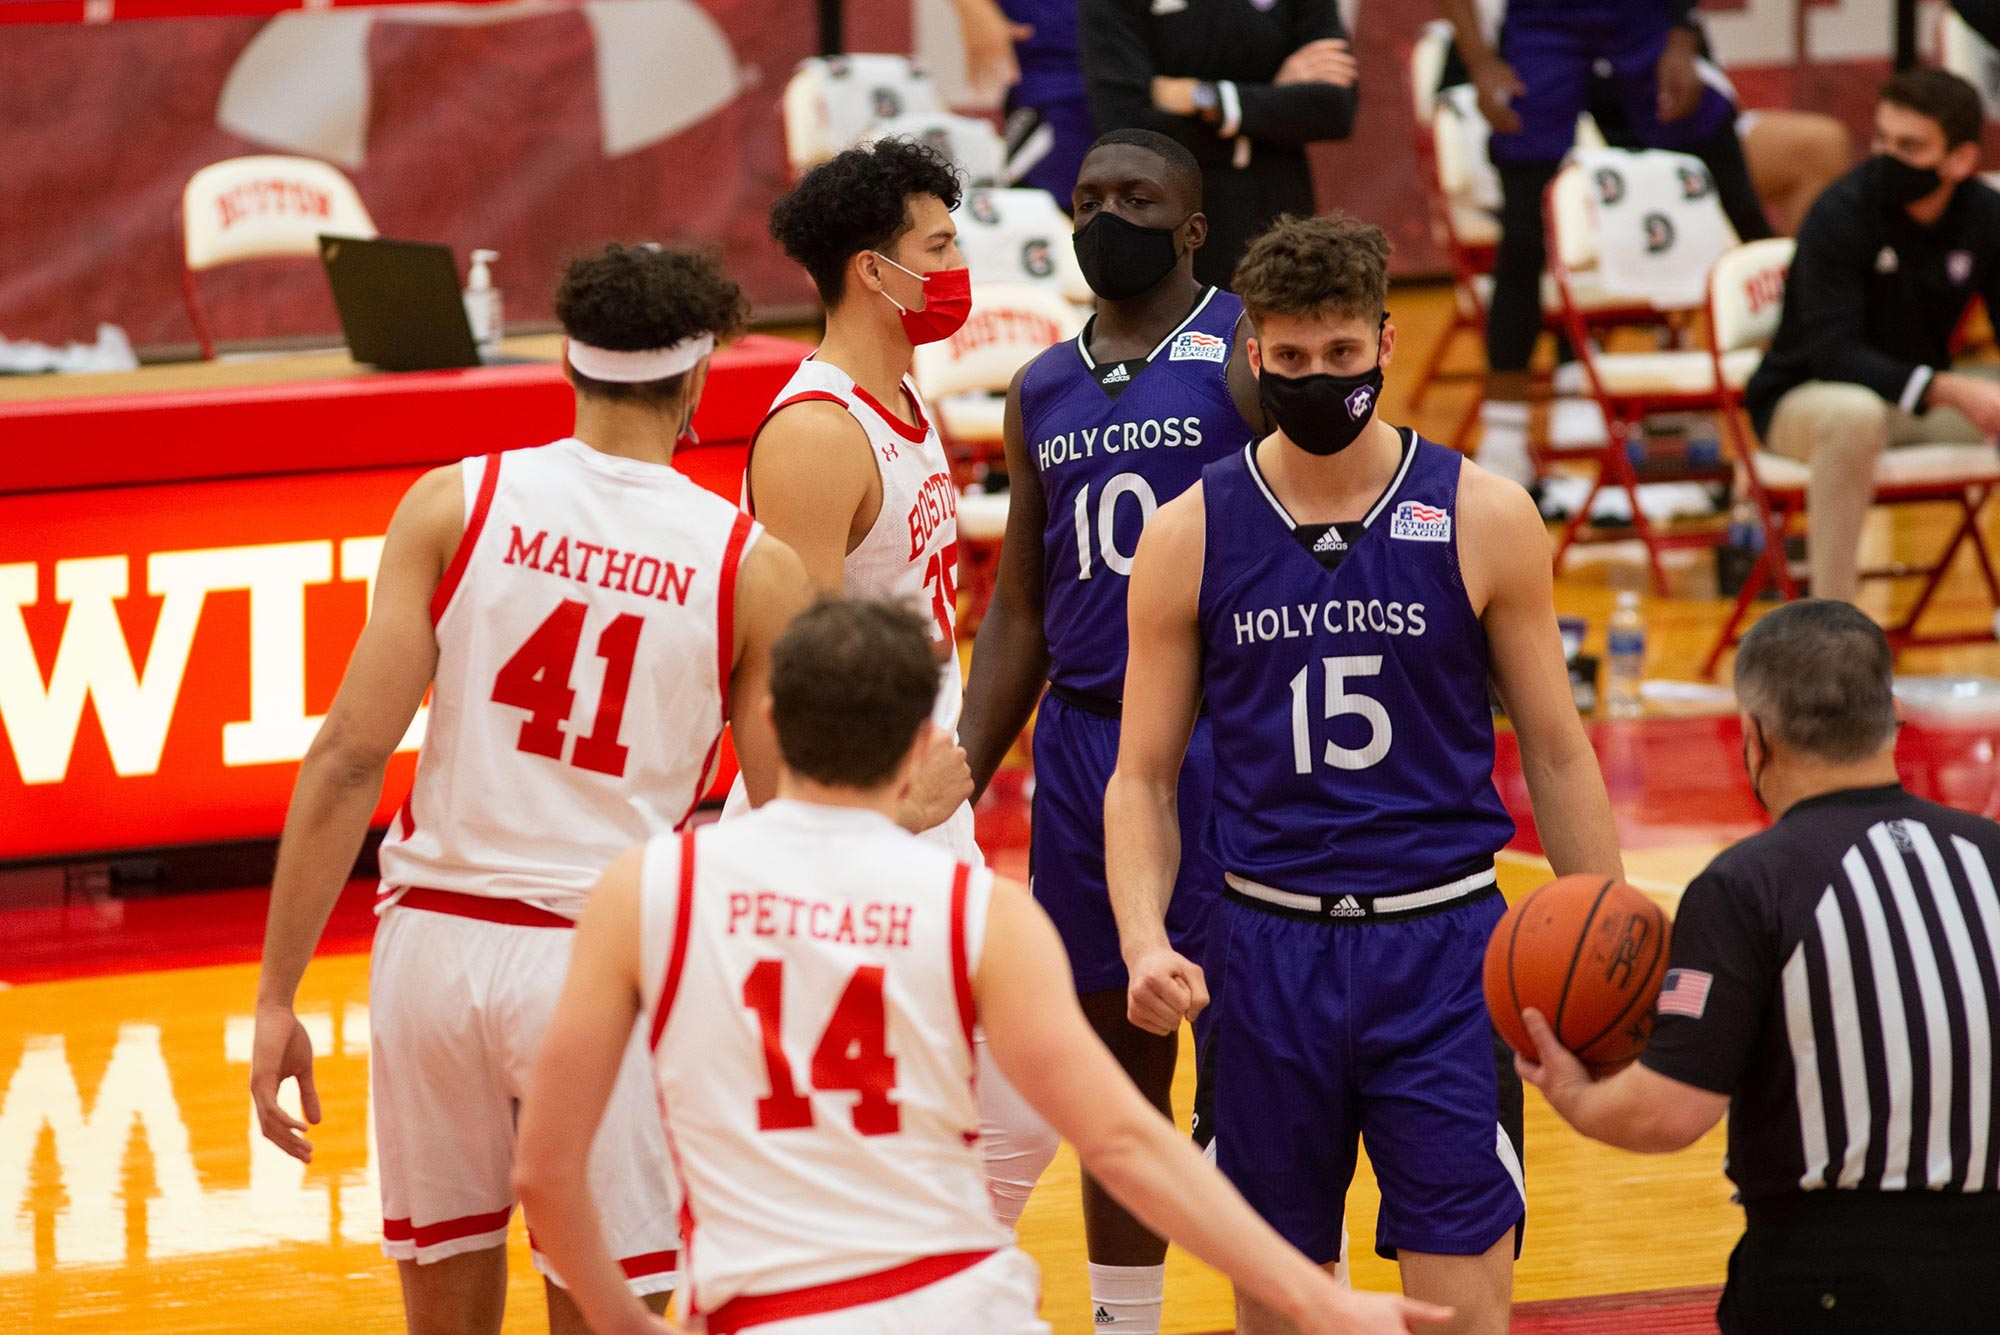 Photo of BU and Holy Cross men's basketball players walking by one another during the pre-game of one of their opening season games. Each of young men wear a face mask, and a referee with a ball in his hands is seen in the foreground.